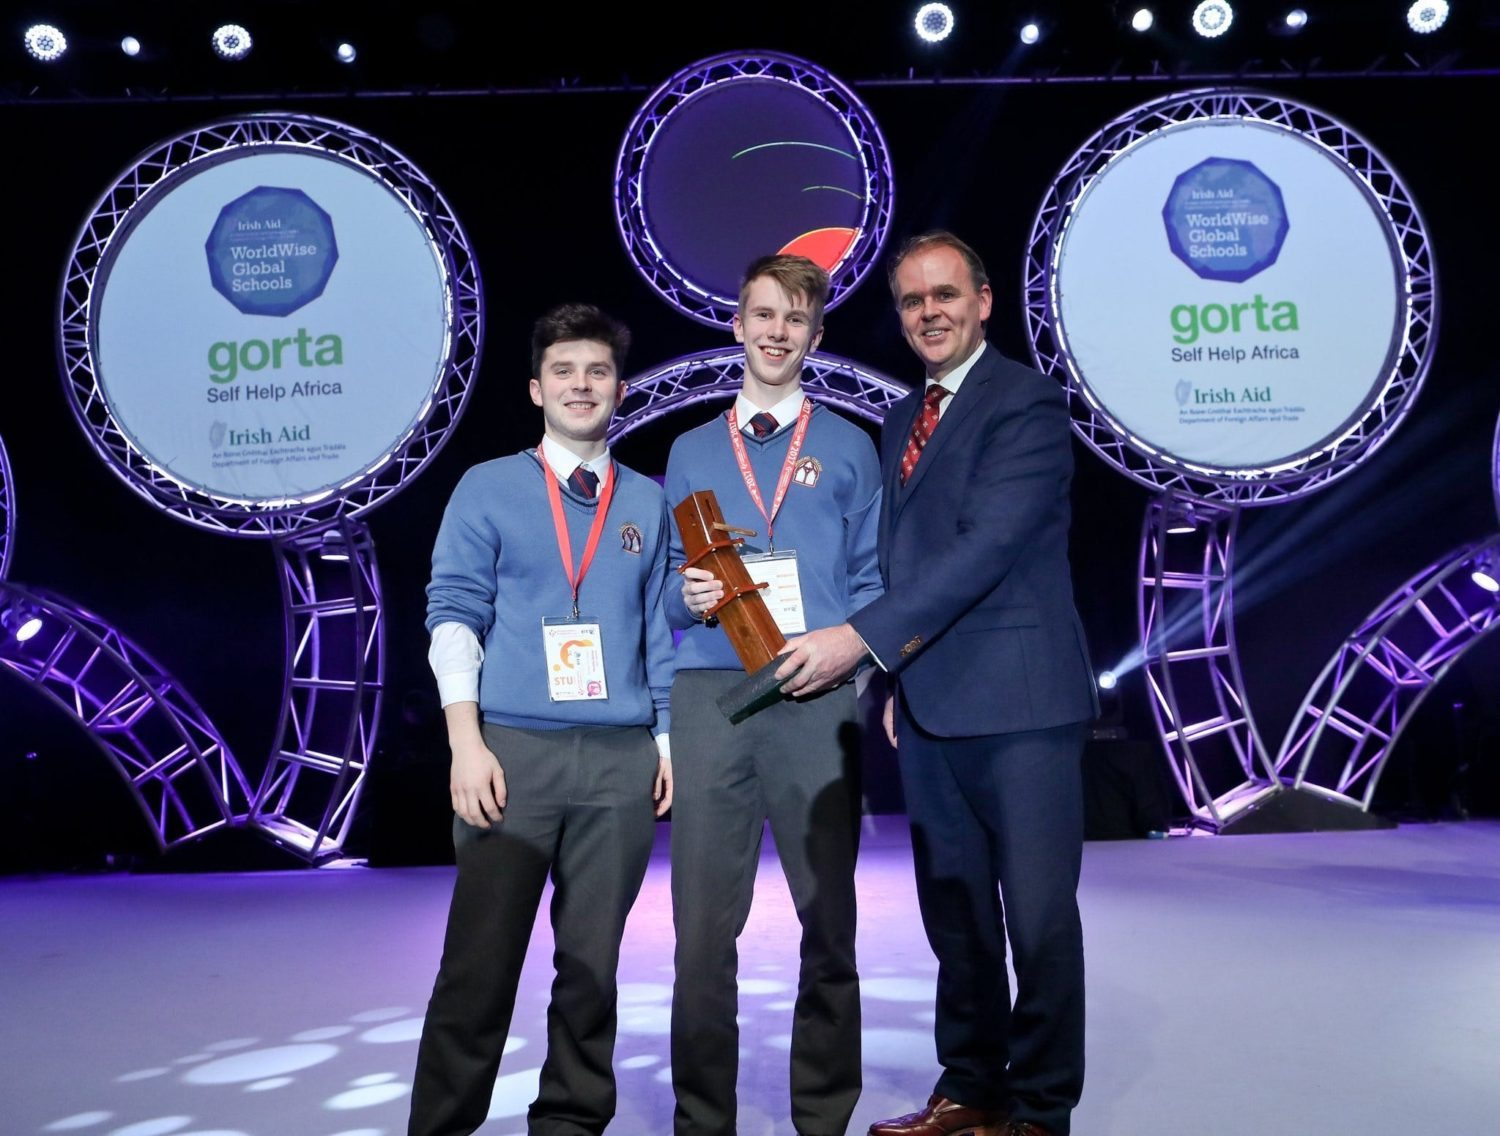 Jan 2017: Diarmuid Curtin and Jack O'Connor receiving their award from Science for Development.